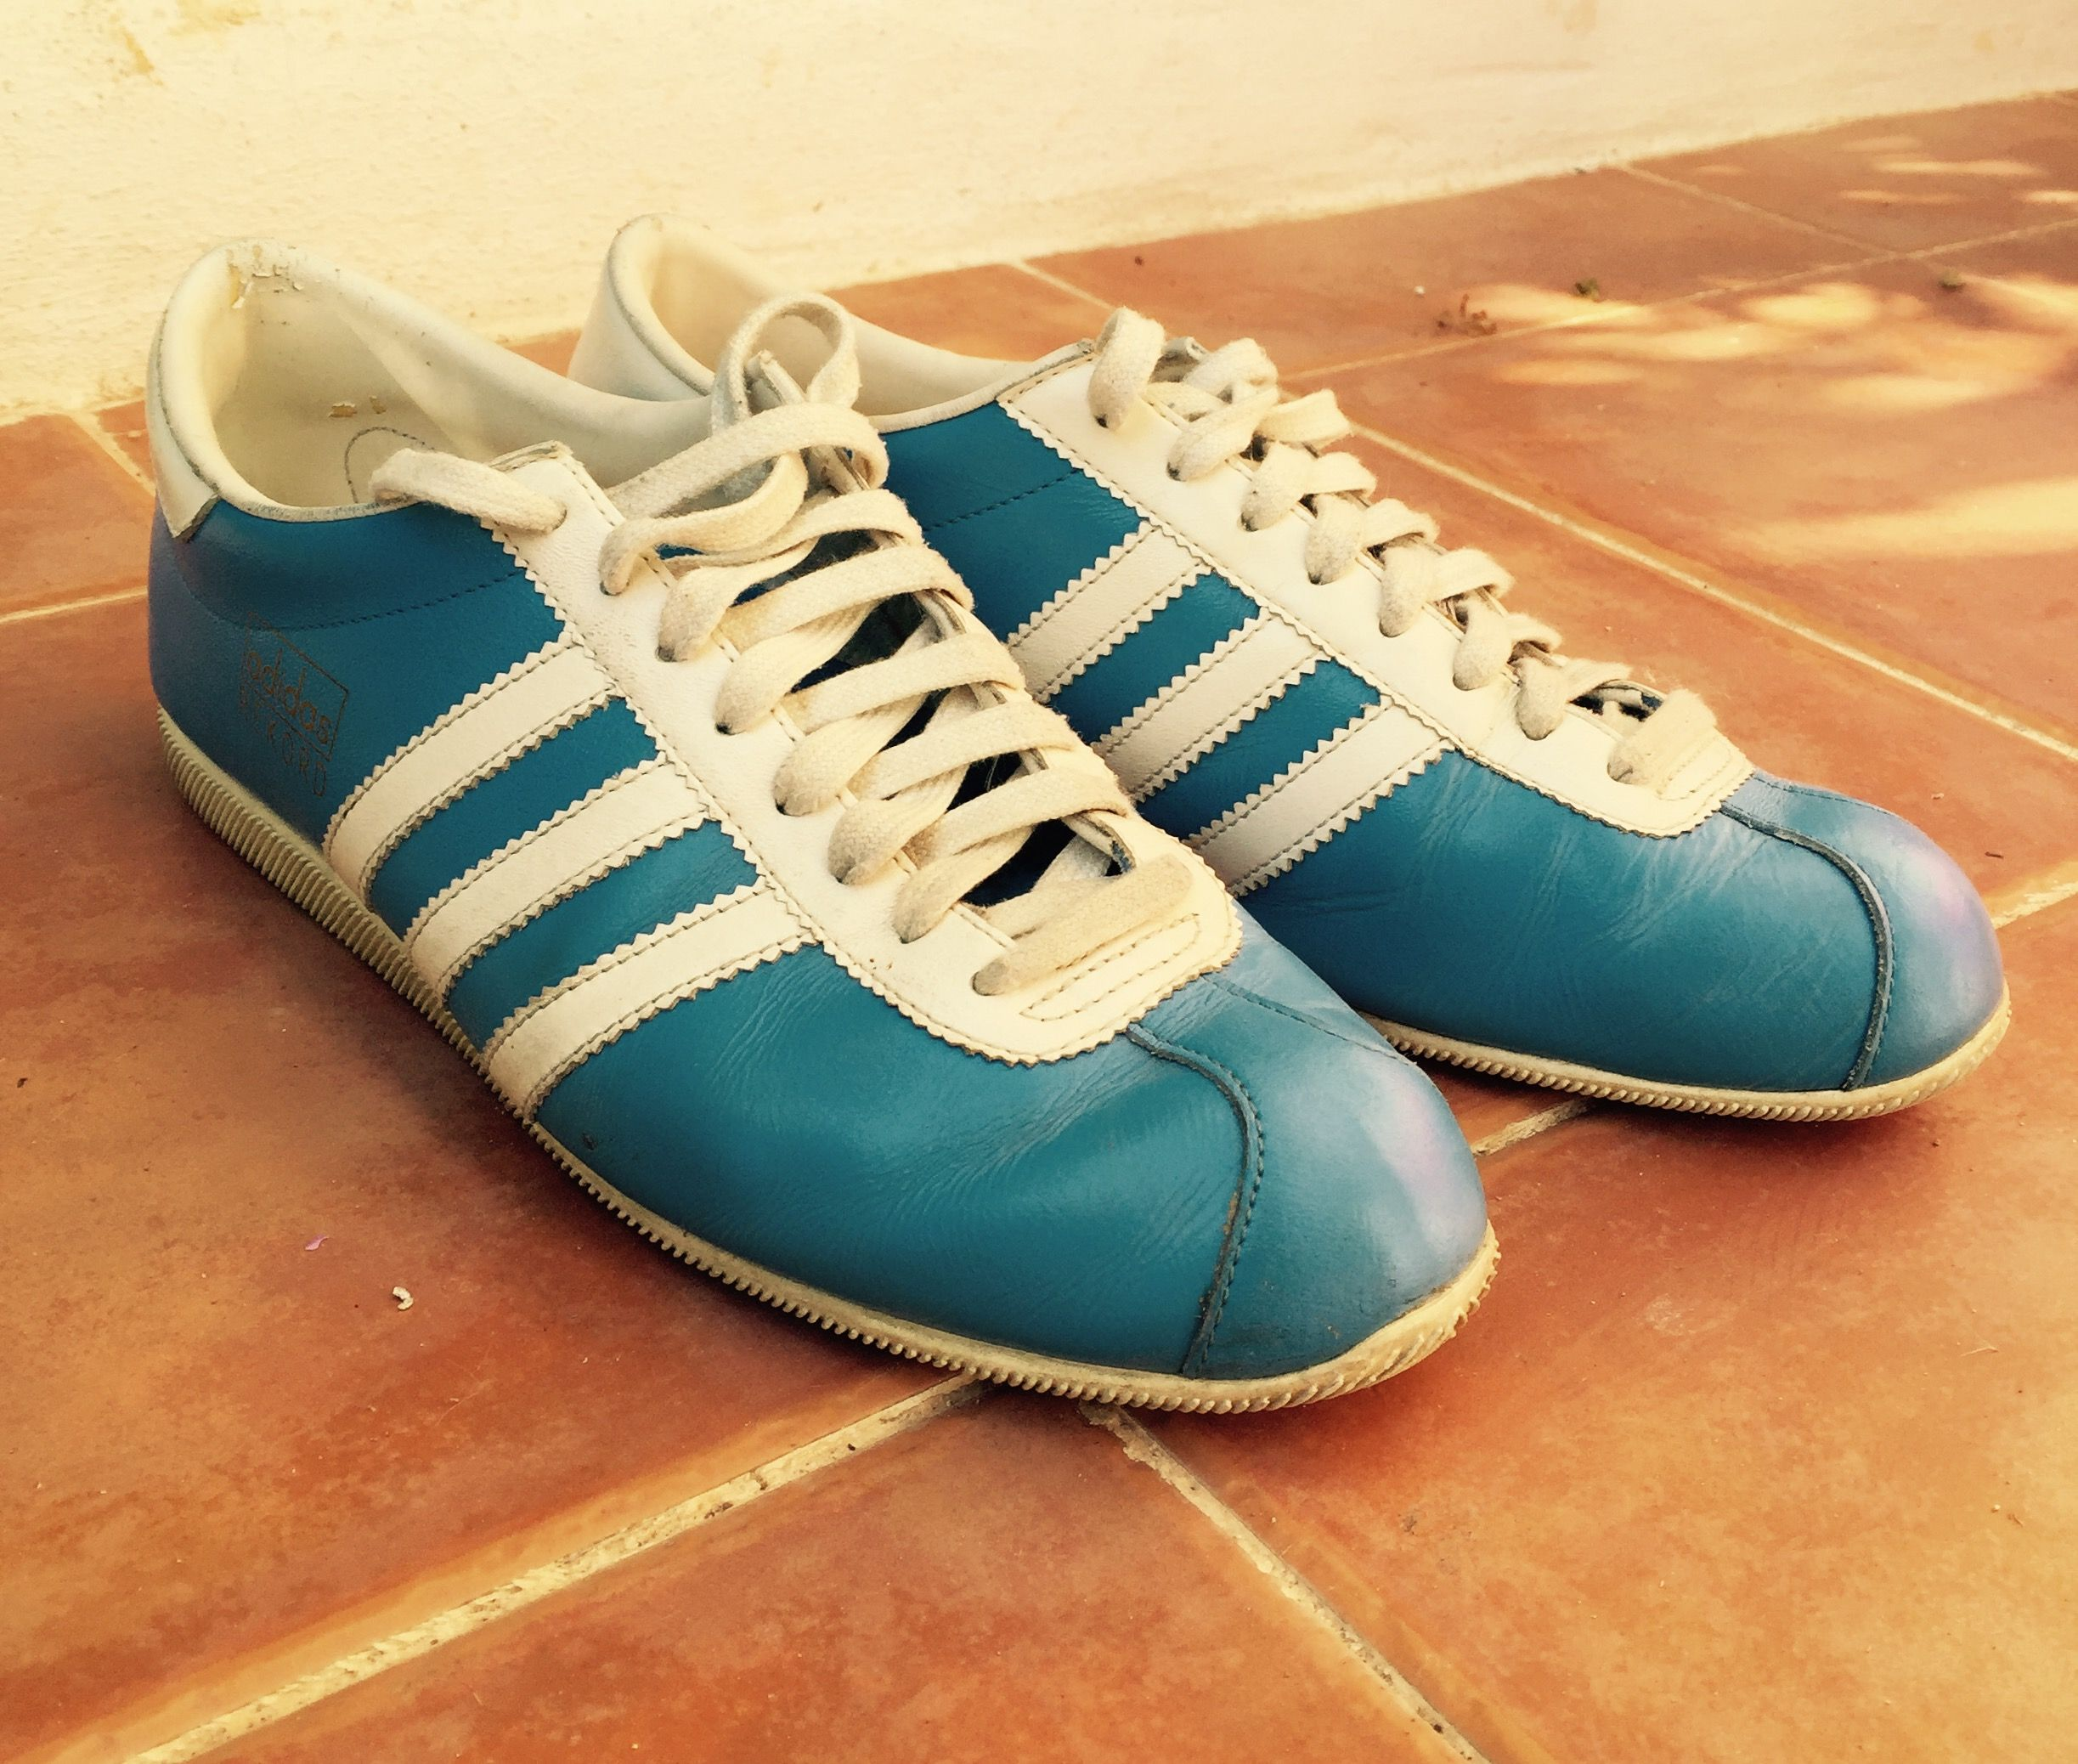 Shoes' Slight Bowling 70s With Rekords Adidas Touch A My Trainers xwHTtUR7